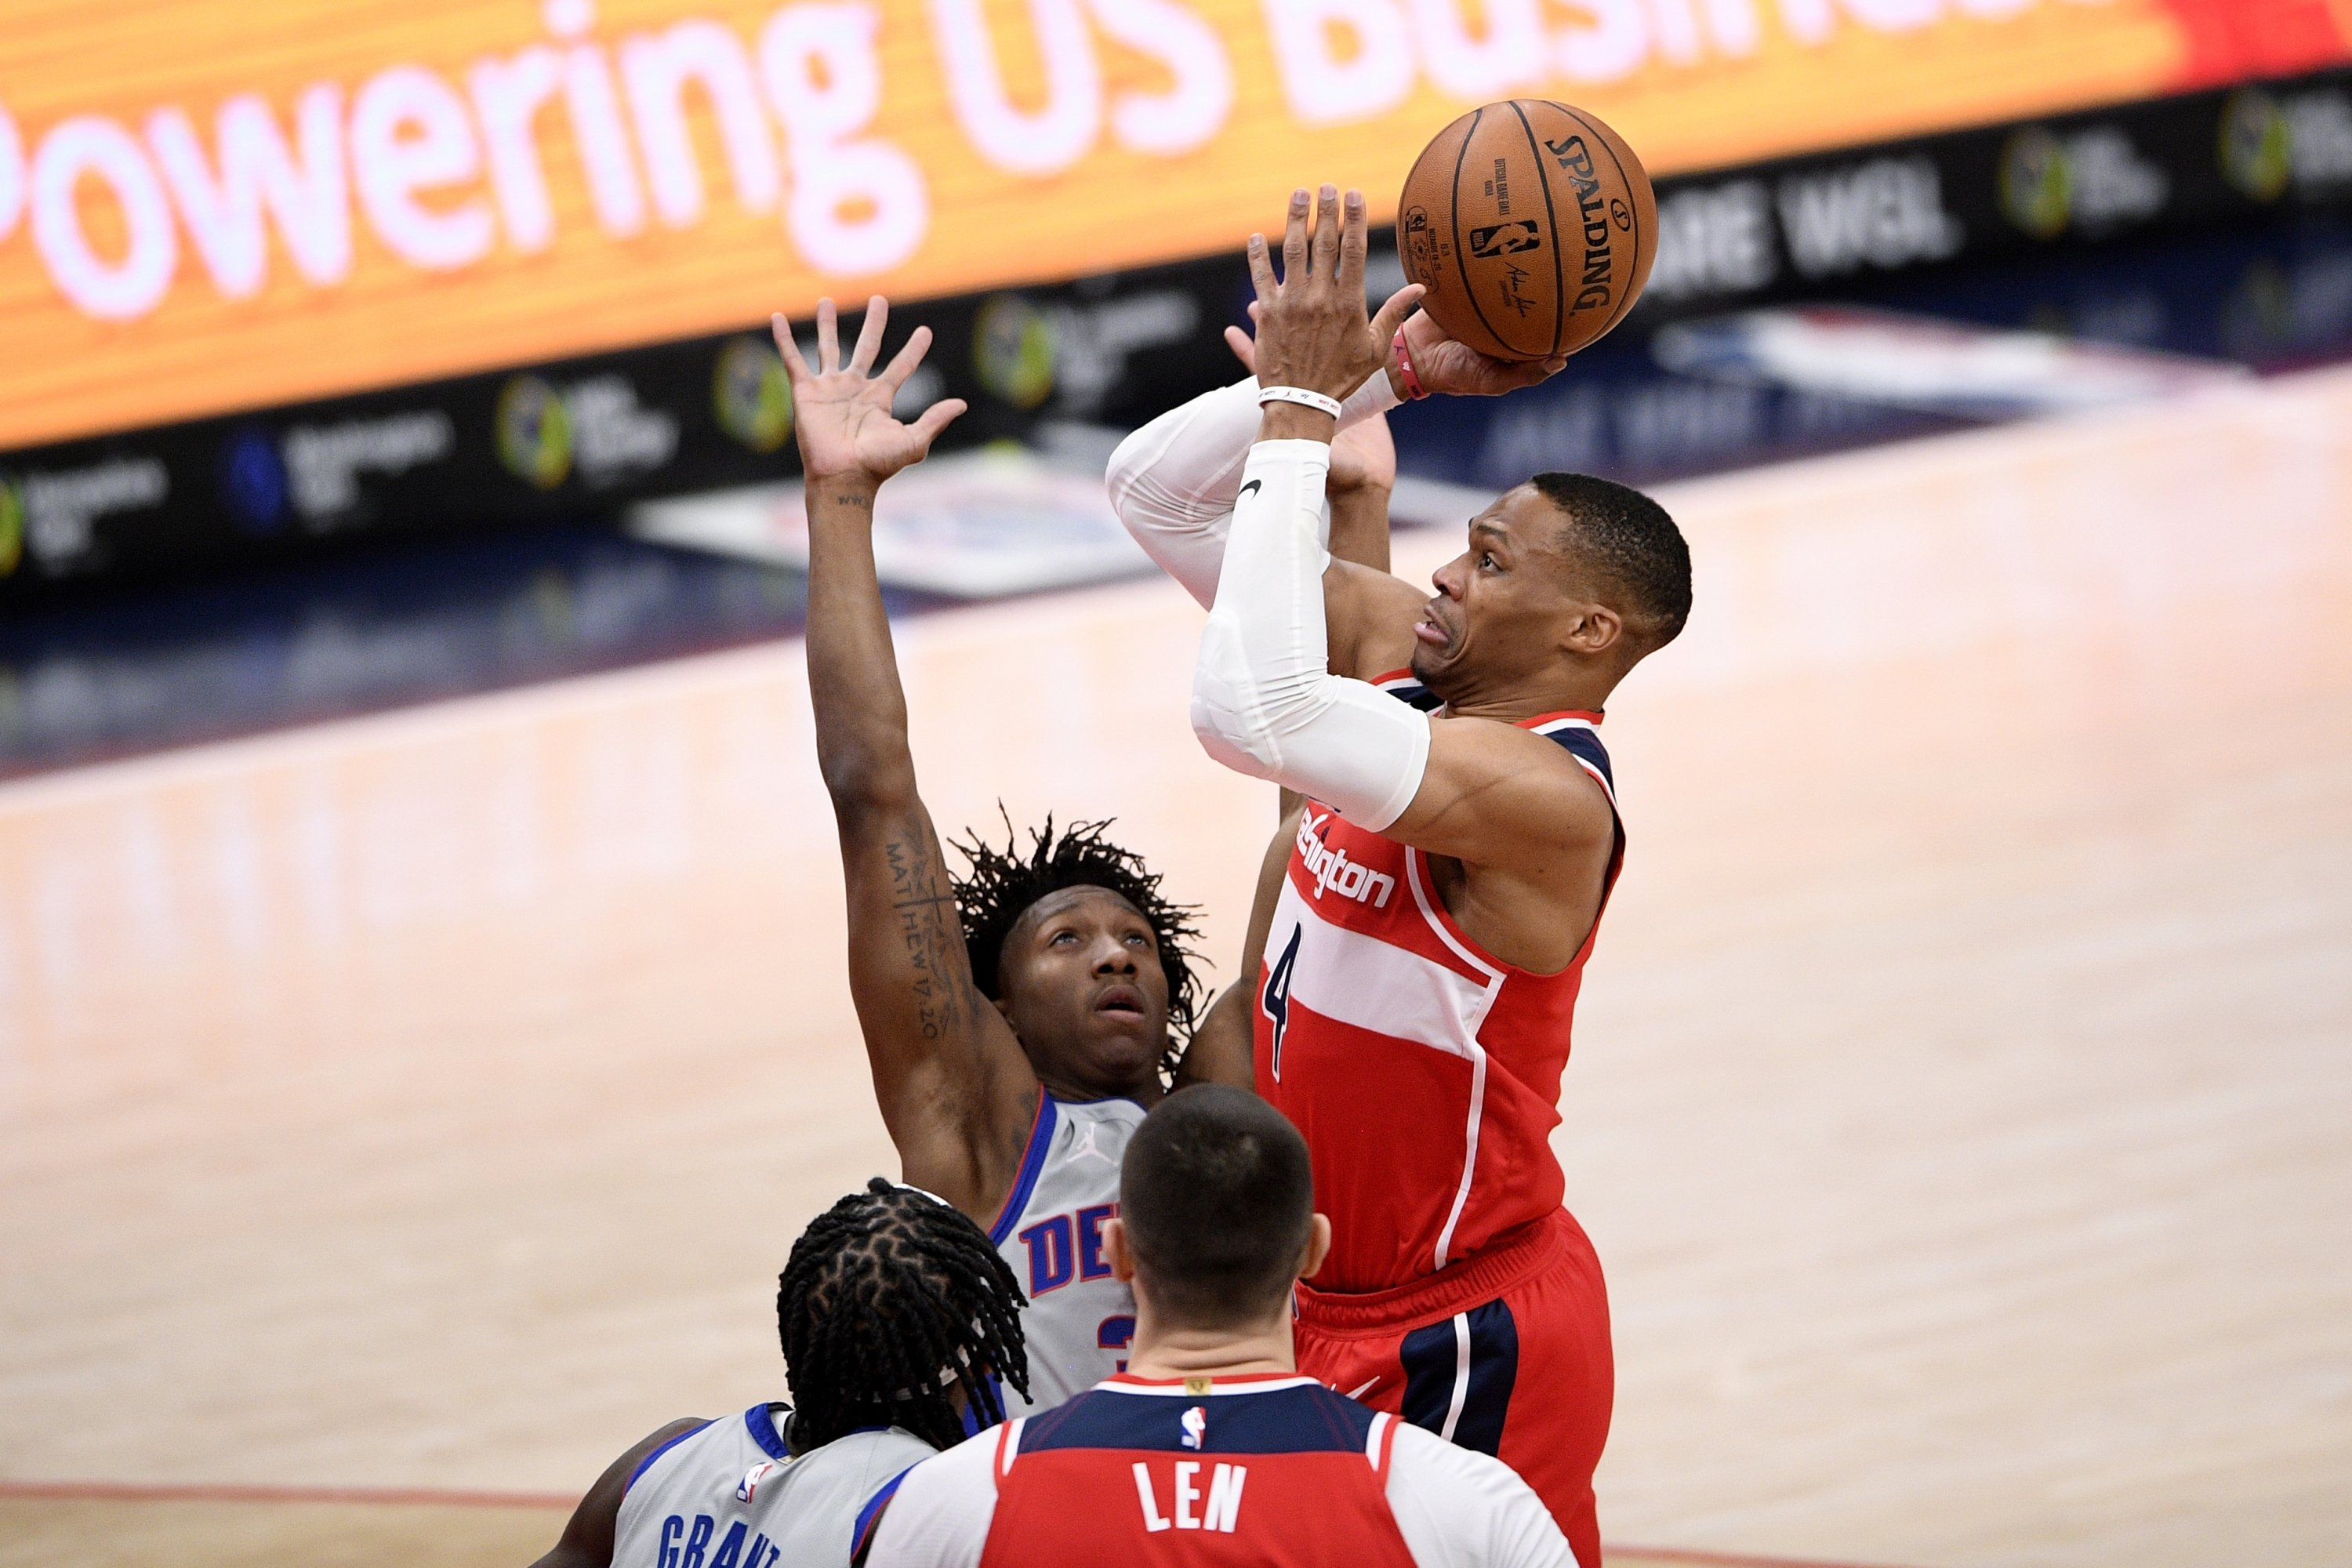 Washington Wizards guard Russell Westbrook (R) shoots against Detroit Pistons during an NBA game in Washington, U.S., March 27, 2021. (AP Photo)